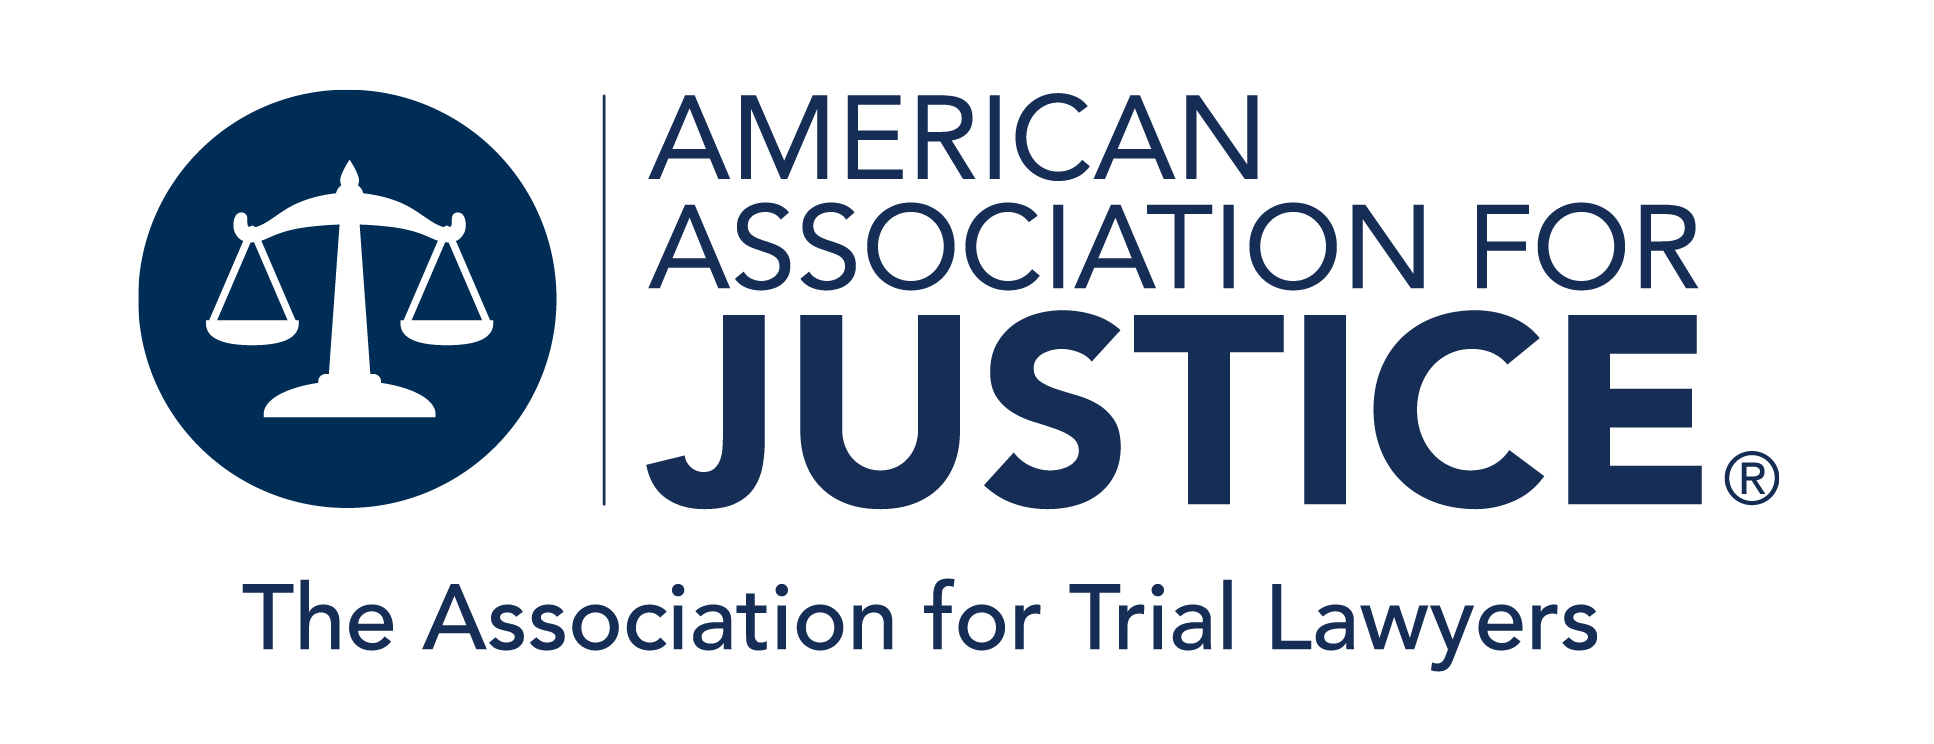 American Association of Justice